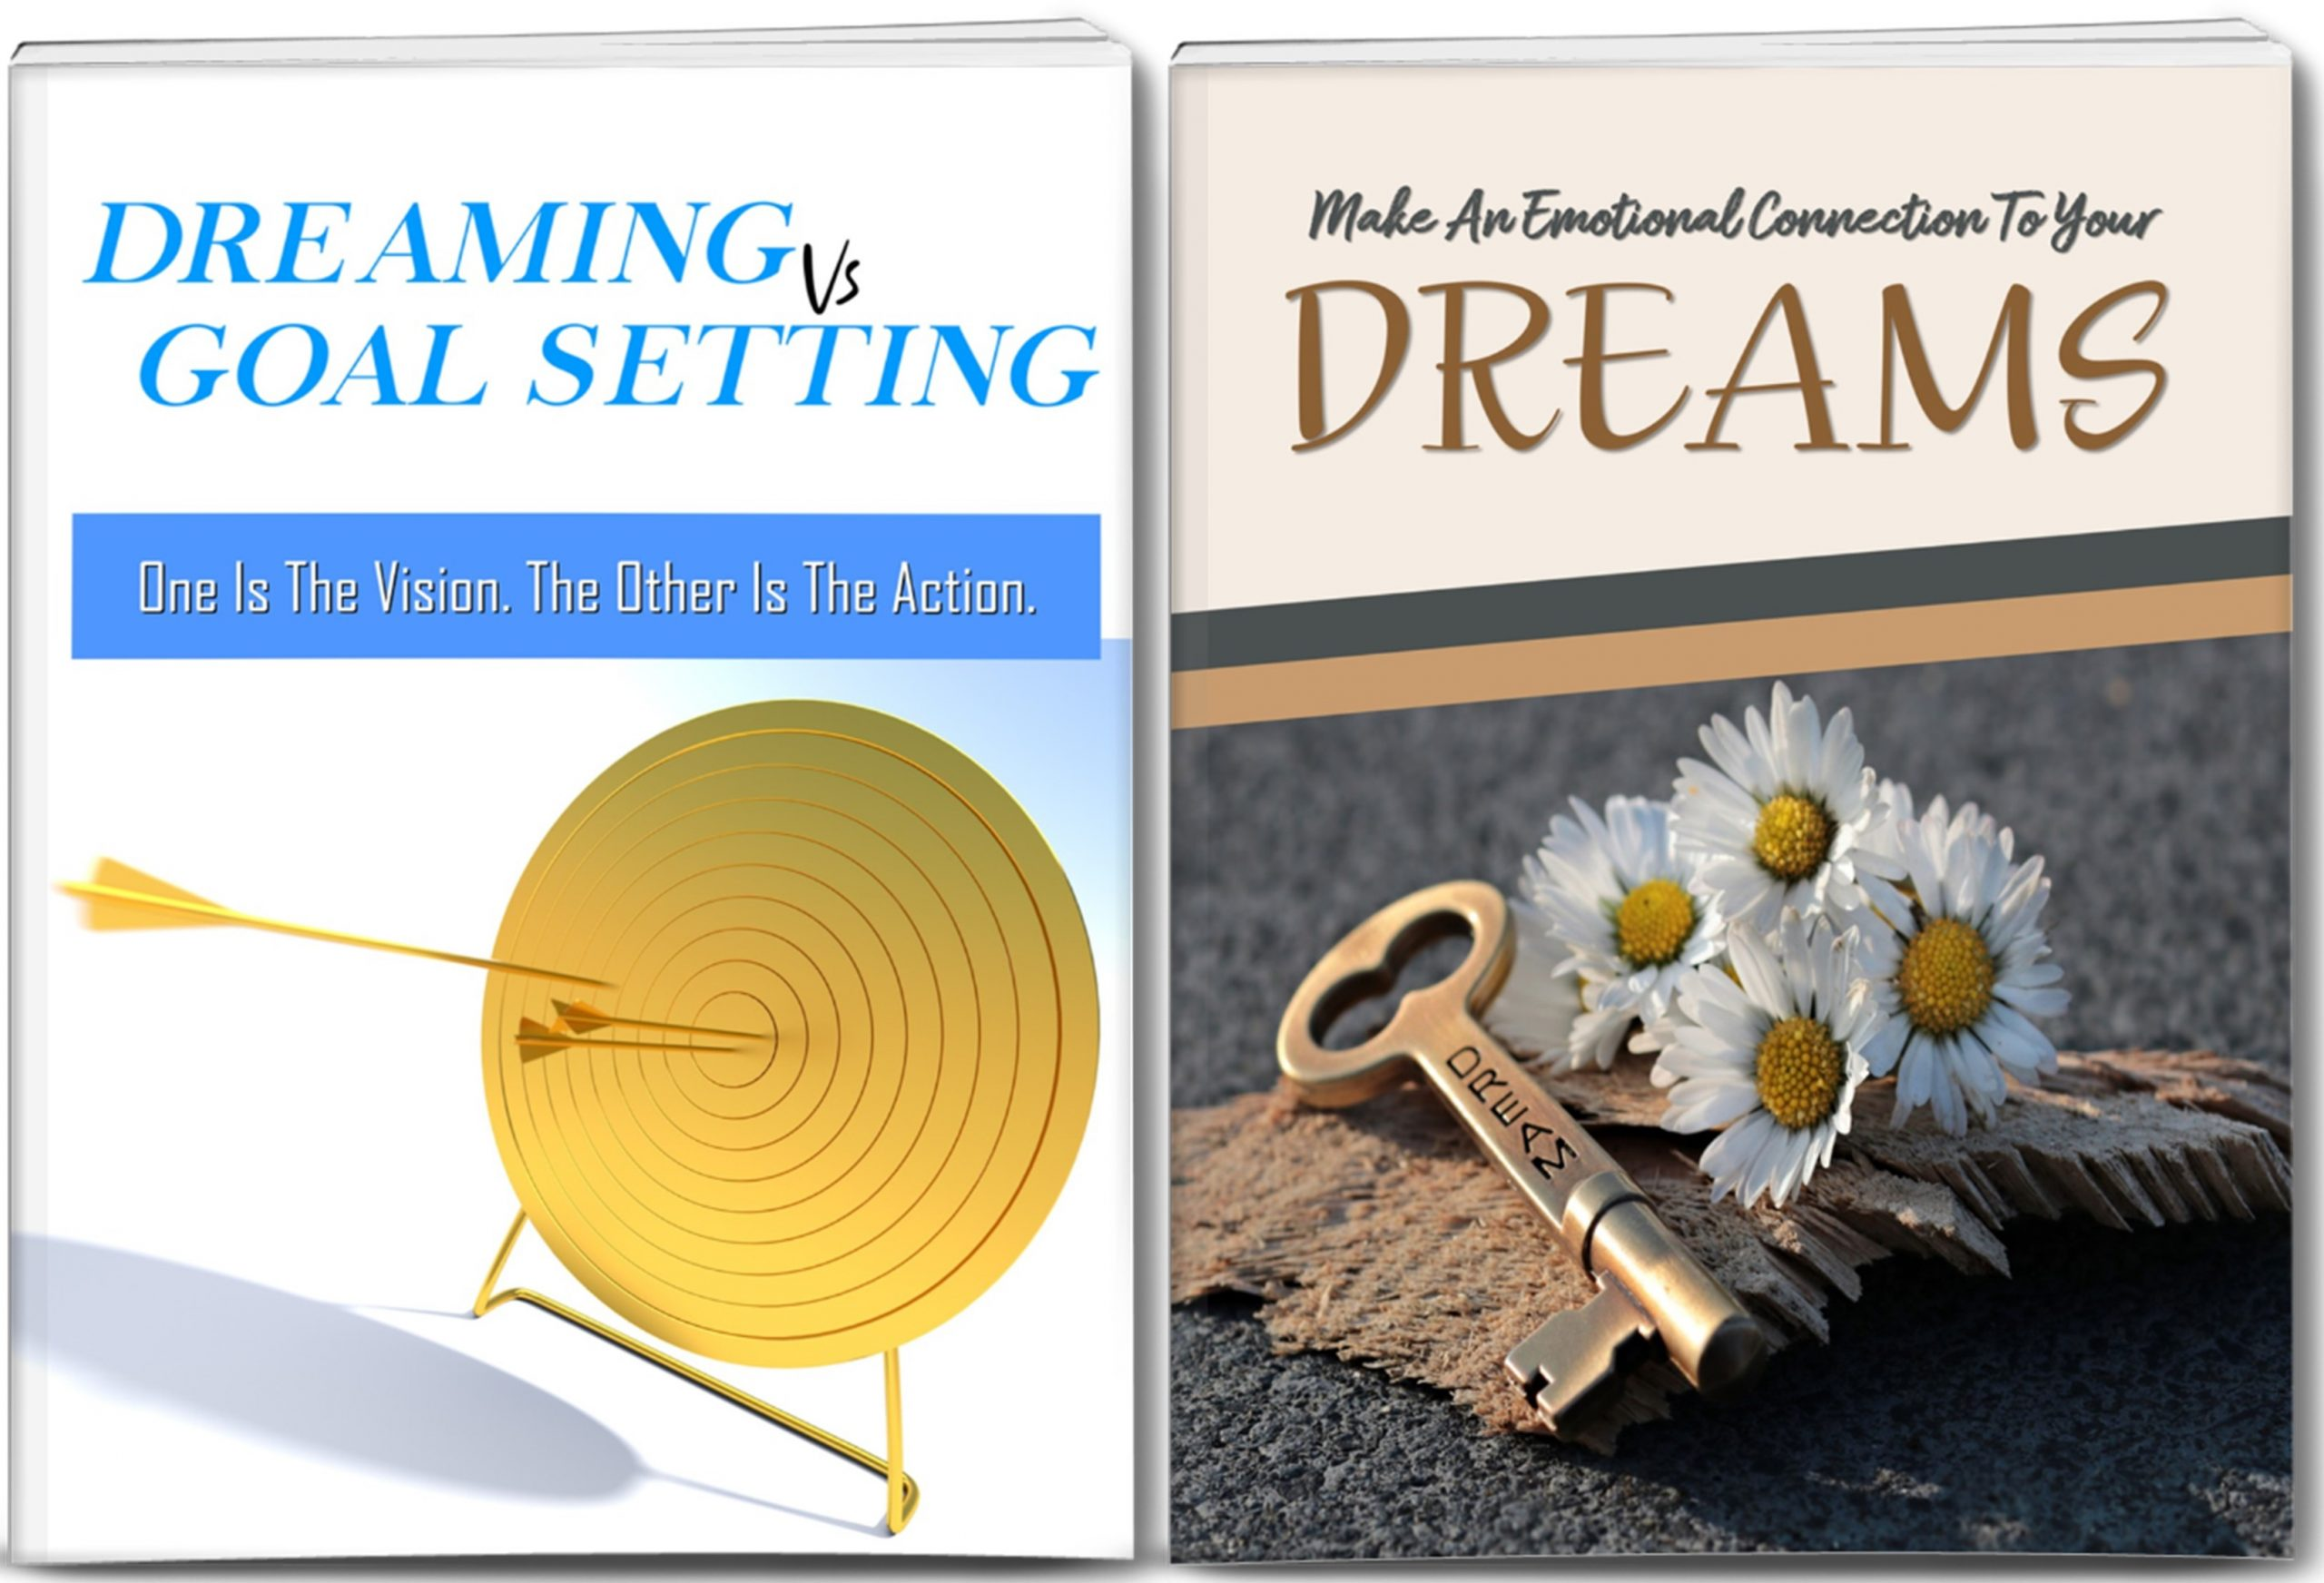 Make An Emotional Connection To Your Dreams Giant Content Pack - Reports, Articles, Graphics And More All With Full PLR Rights